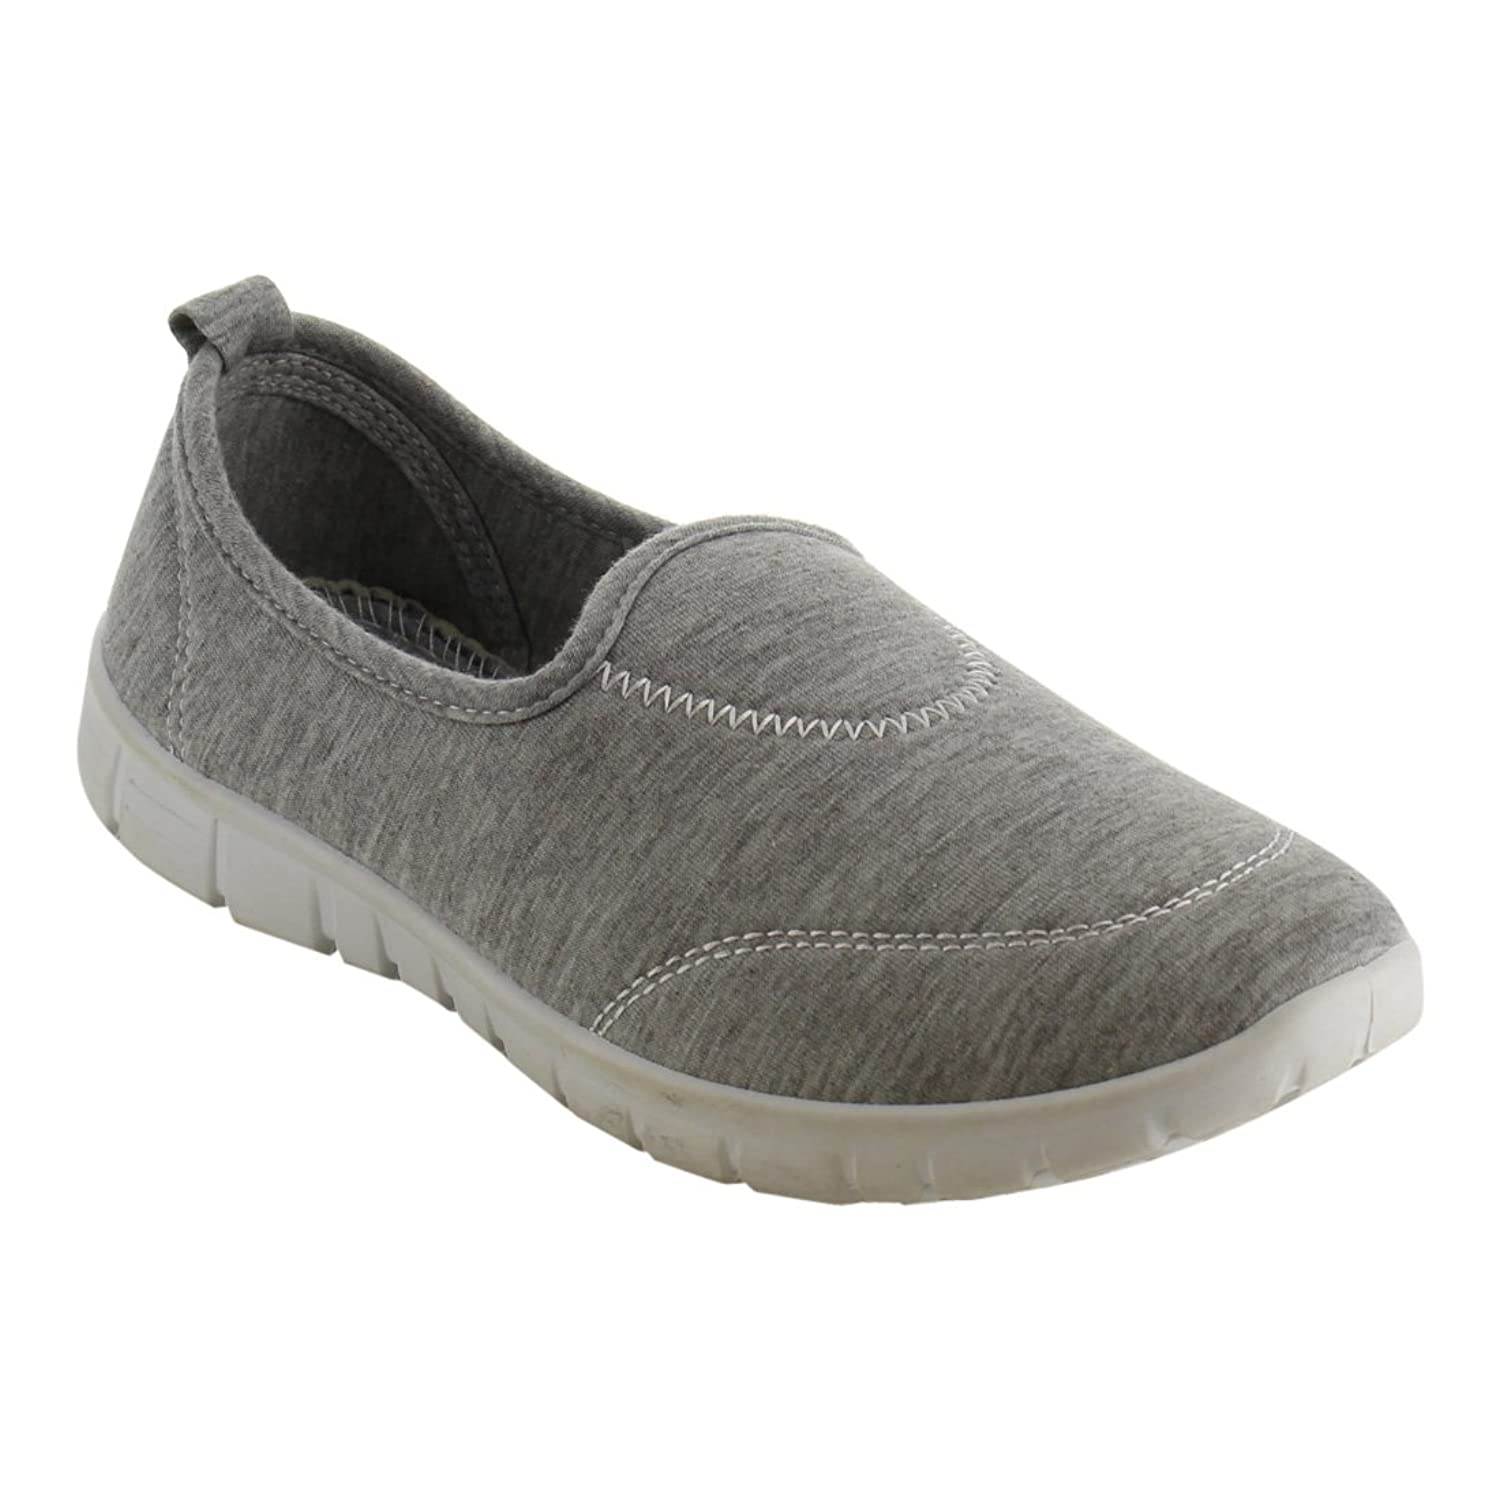 Refresh Jump-05 Women's Rubber Sole Fabric Soft Vamp Sport Flats Grey 7.5